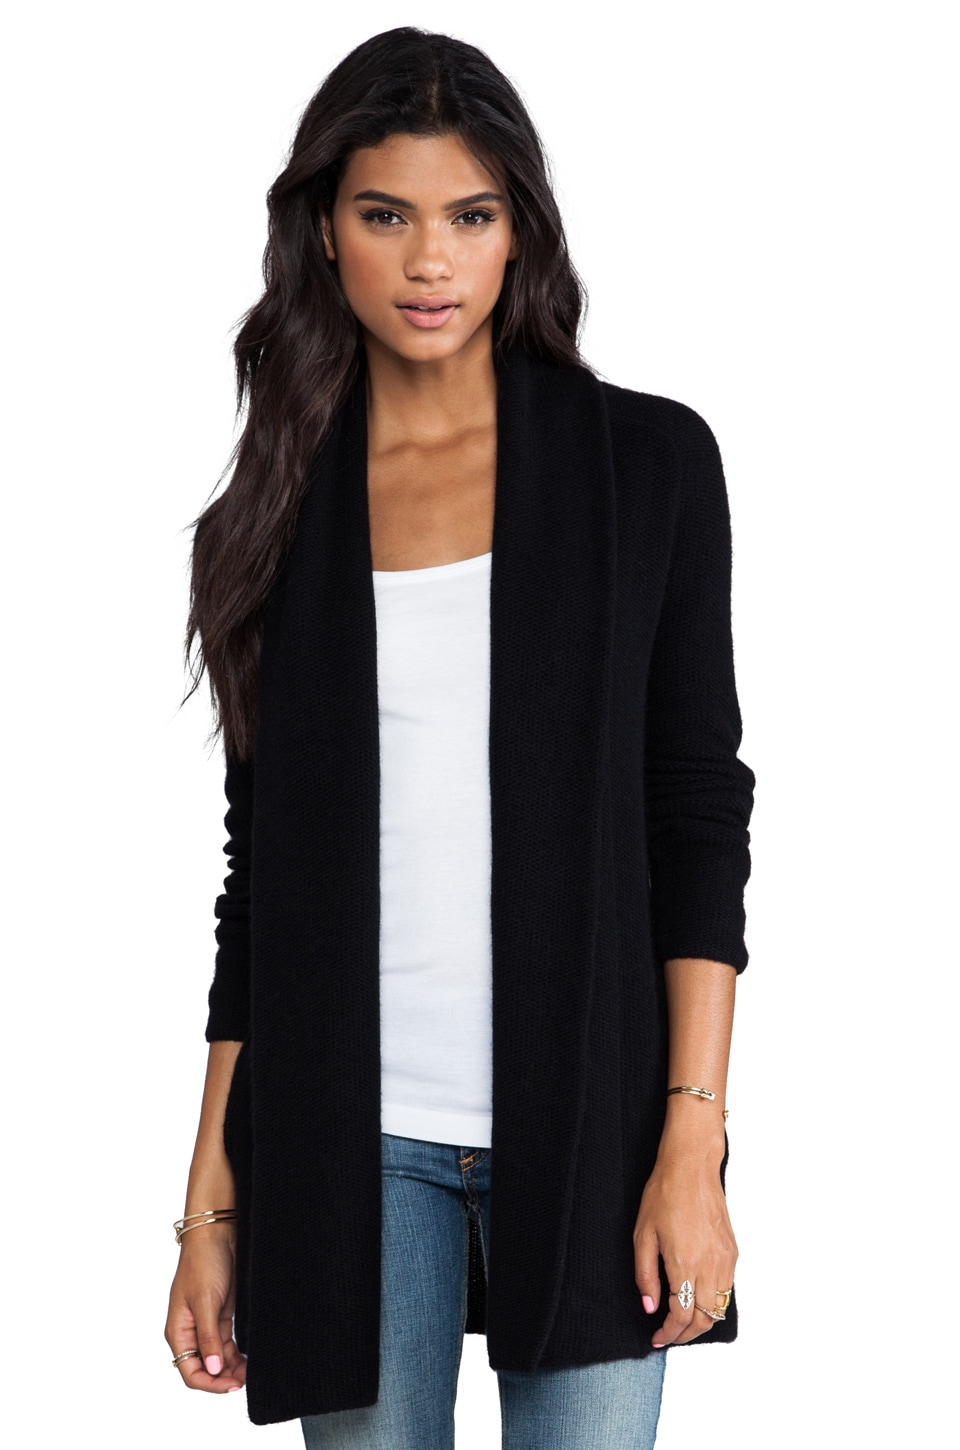 360 Sweater Aries Wool Cashmere Cardigan in Black